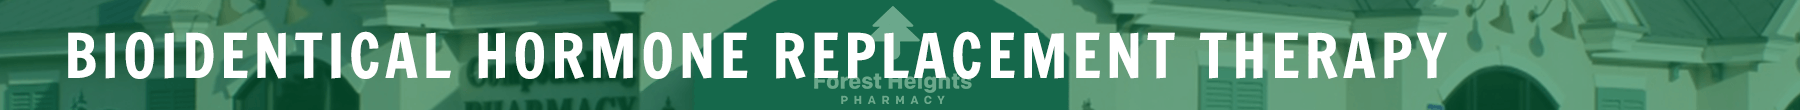 Bioidentical Hormone Replacement Therapy | Statesboro Ga | Forest Heights Pharmacy